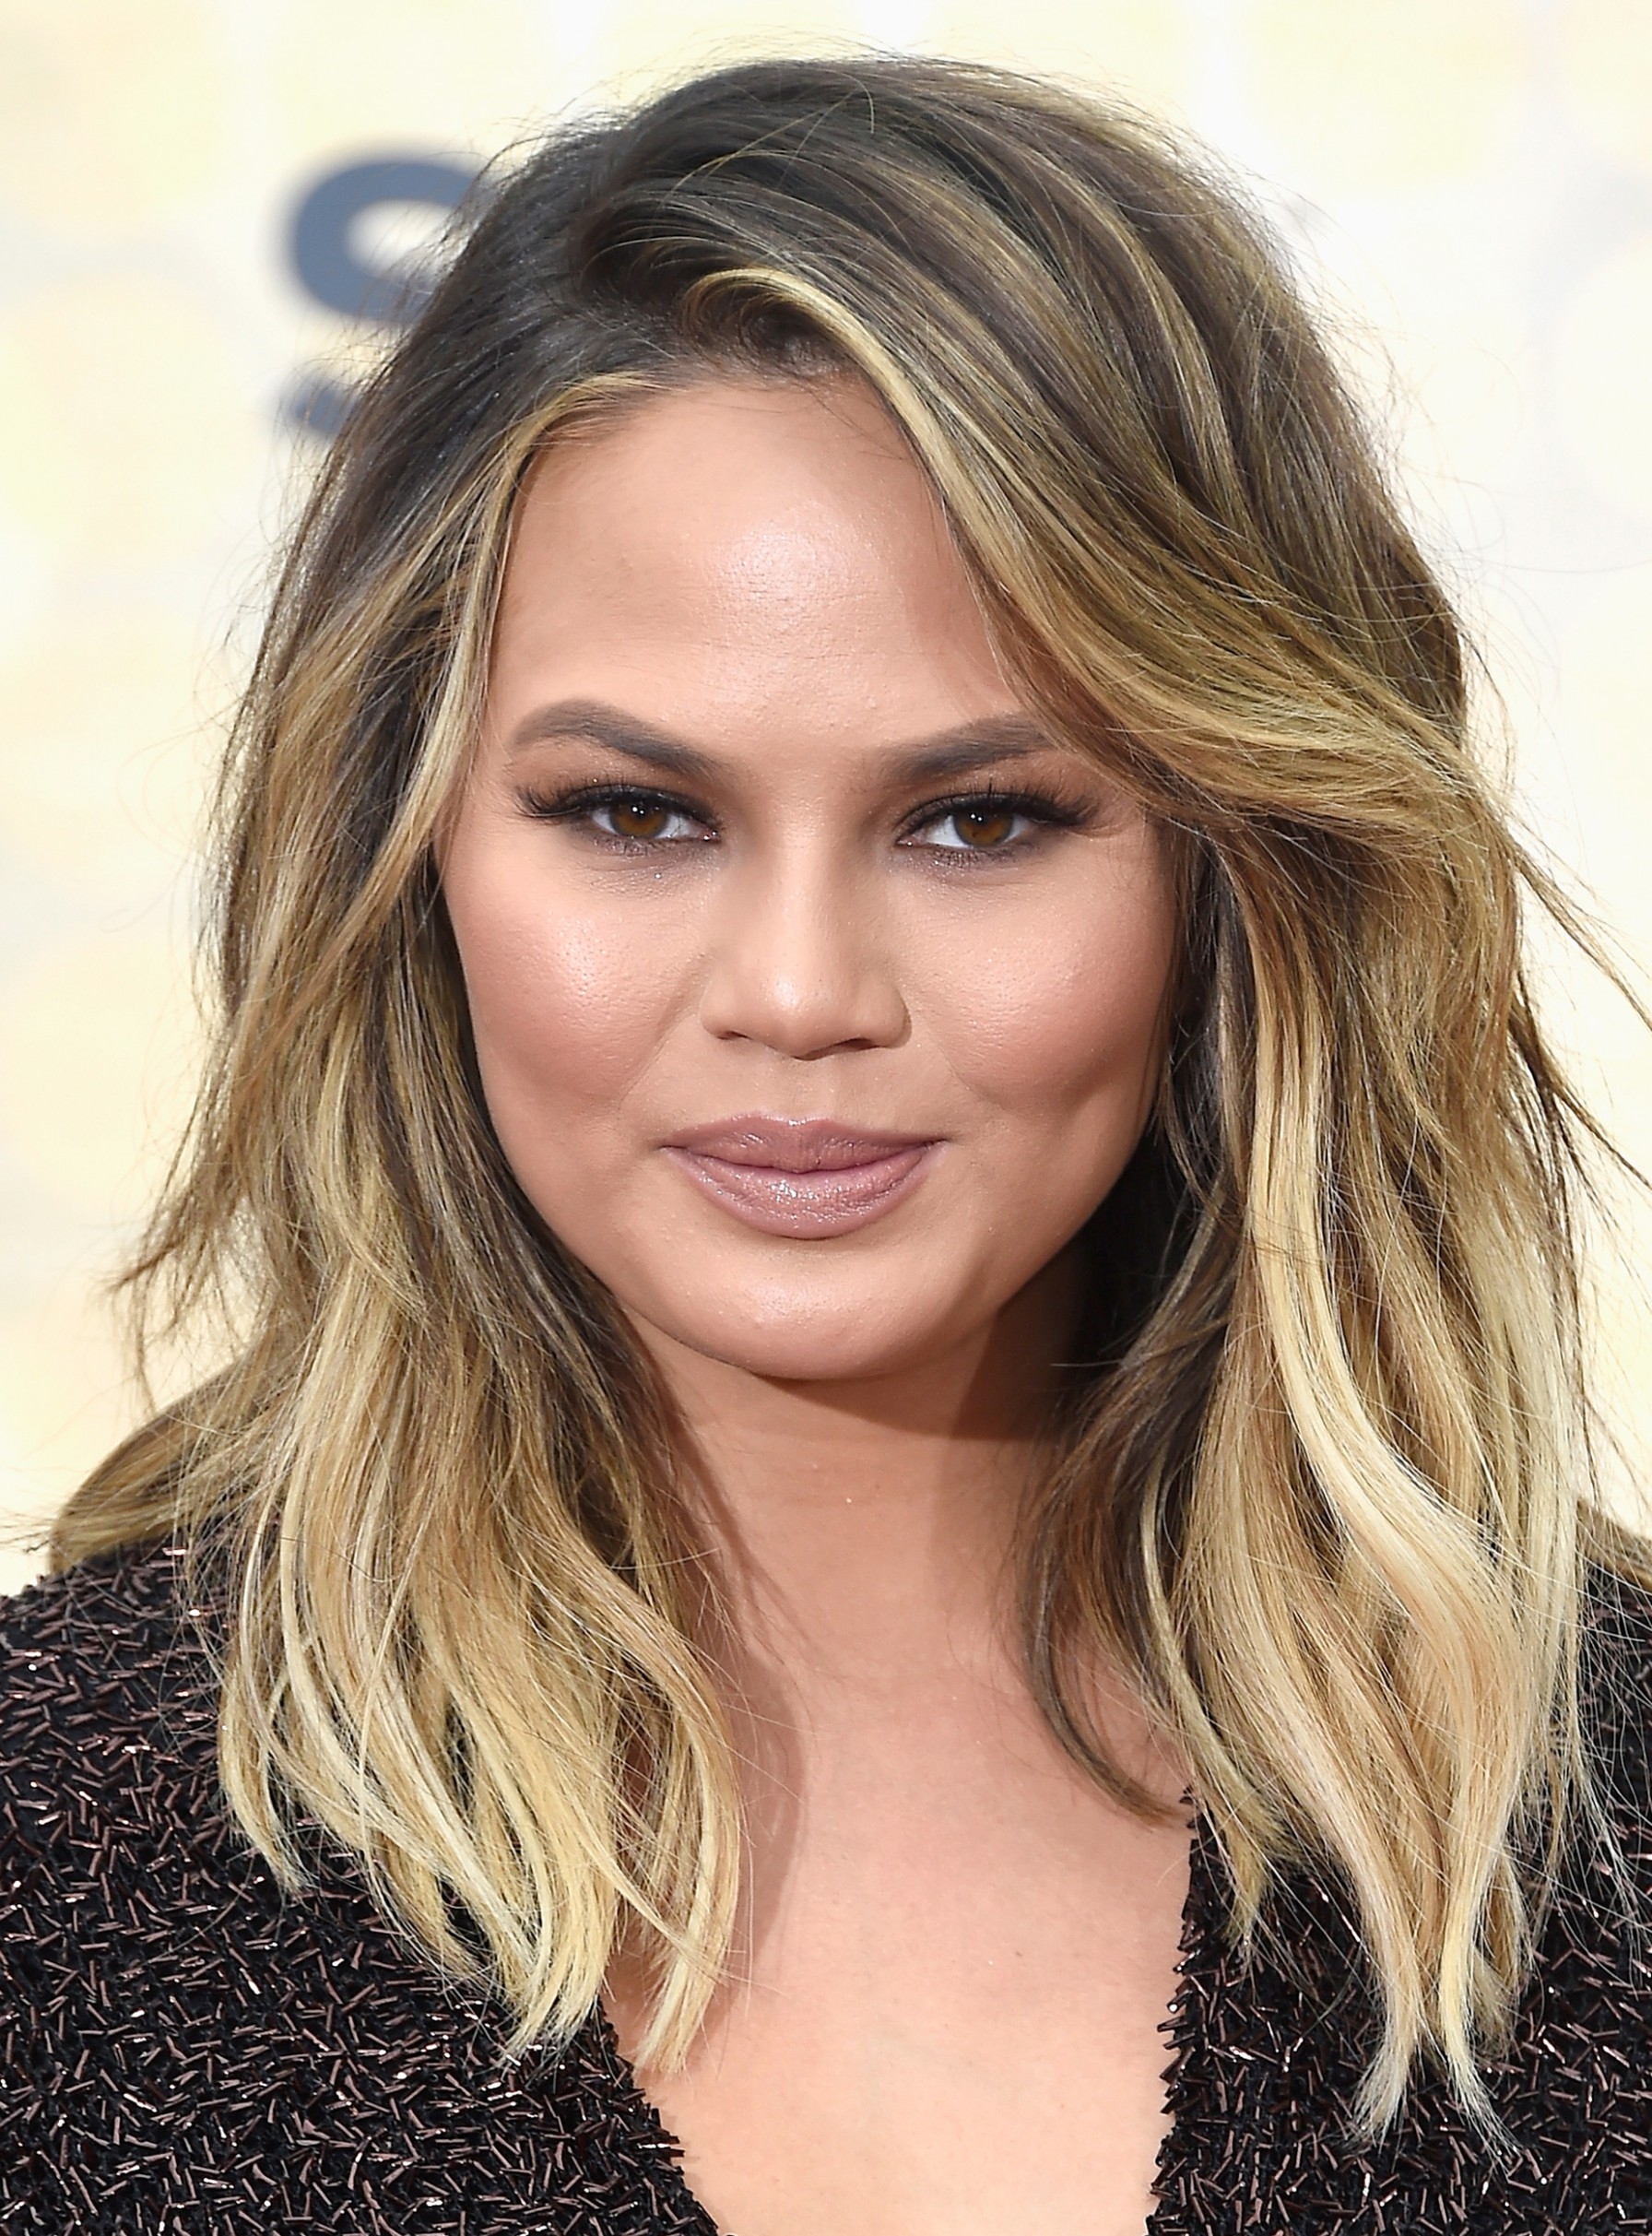 8 Best Hairstyles For Round Faces Round Face Shape Hairstyles